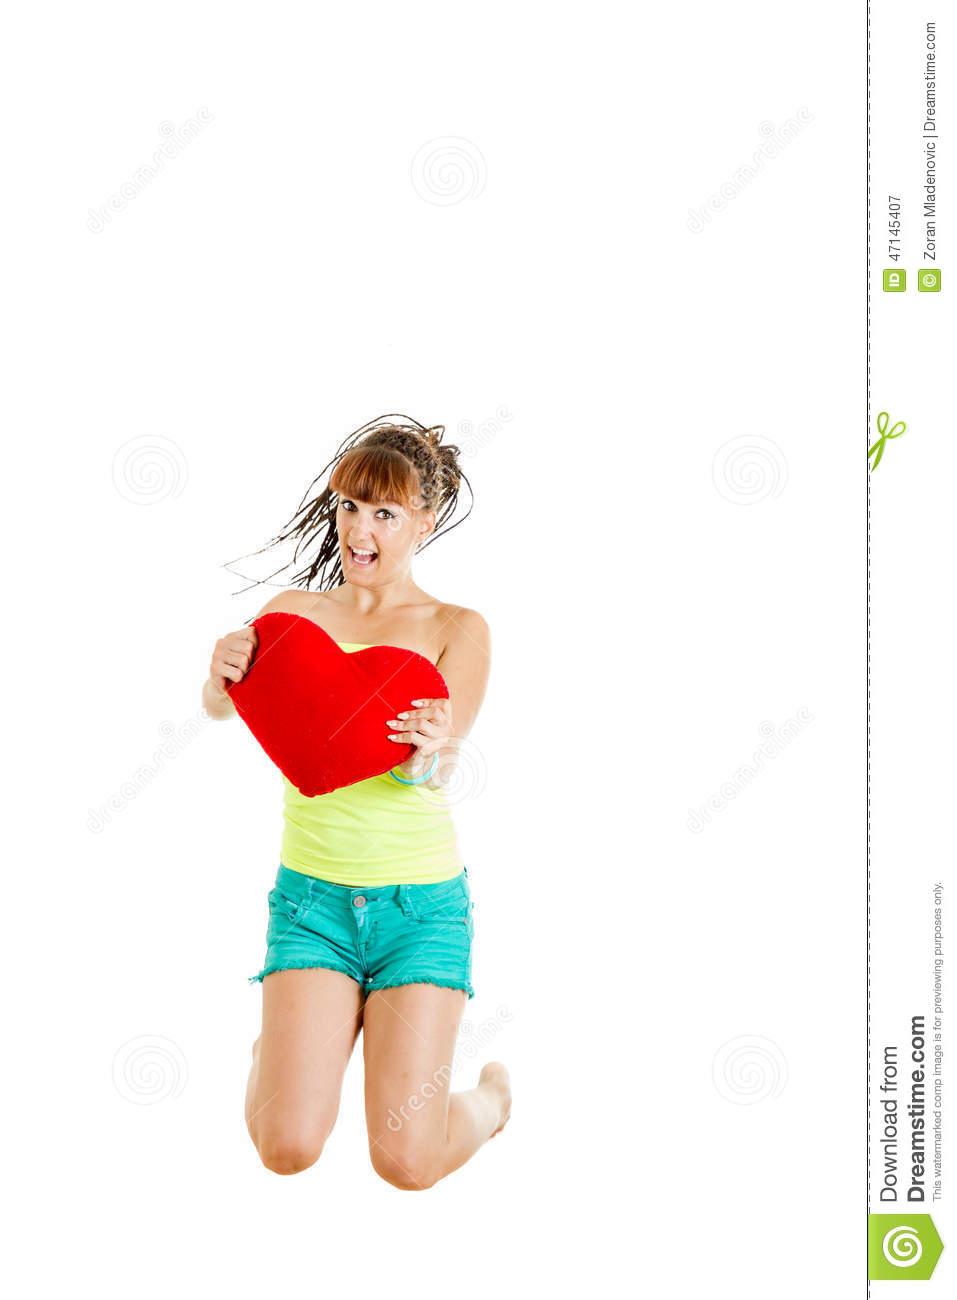 Joyful young woman with big heart jumping of surprise